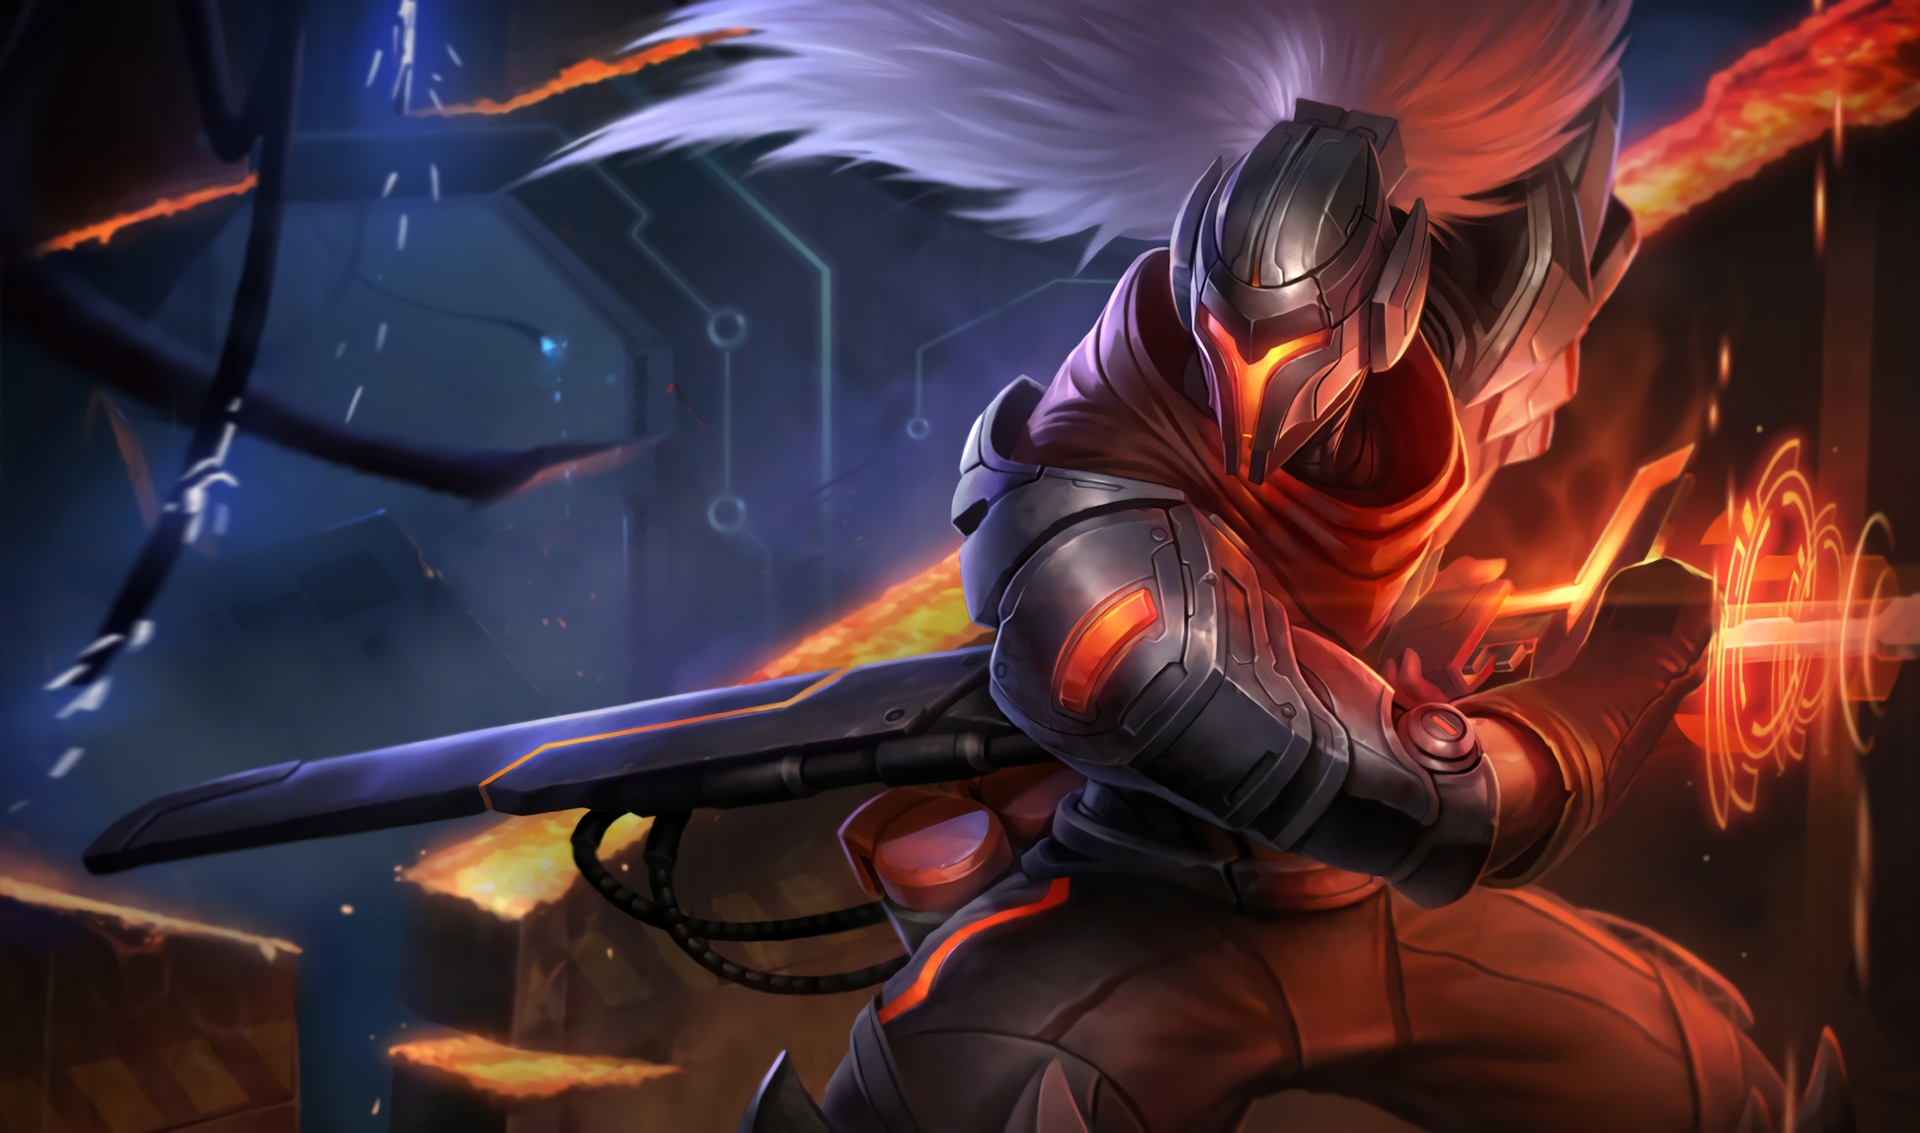 3514 league of legends hd wallpapers   background images - wallpaper